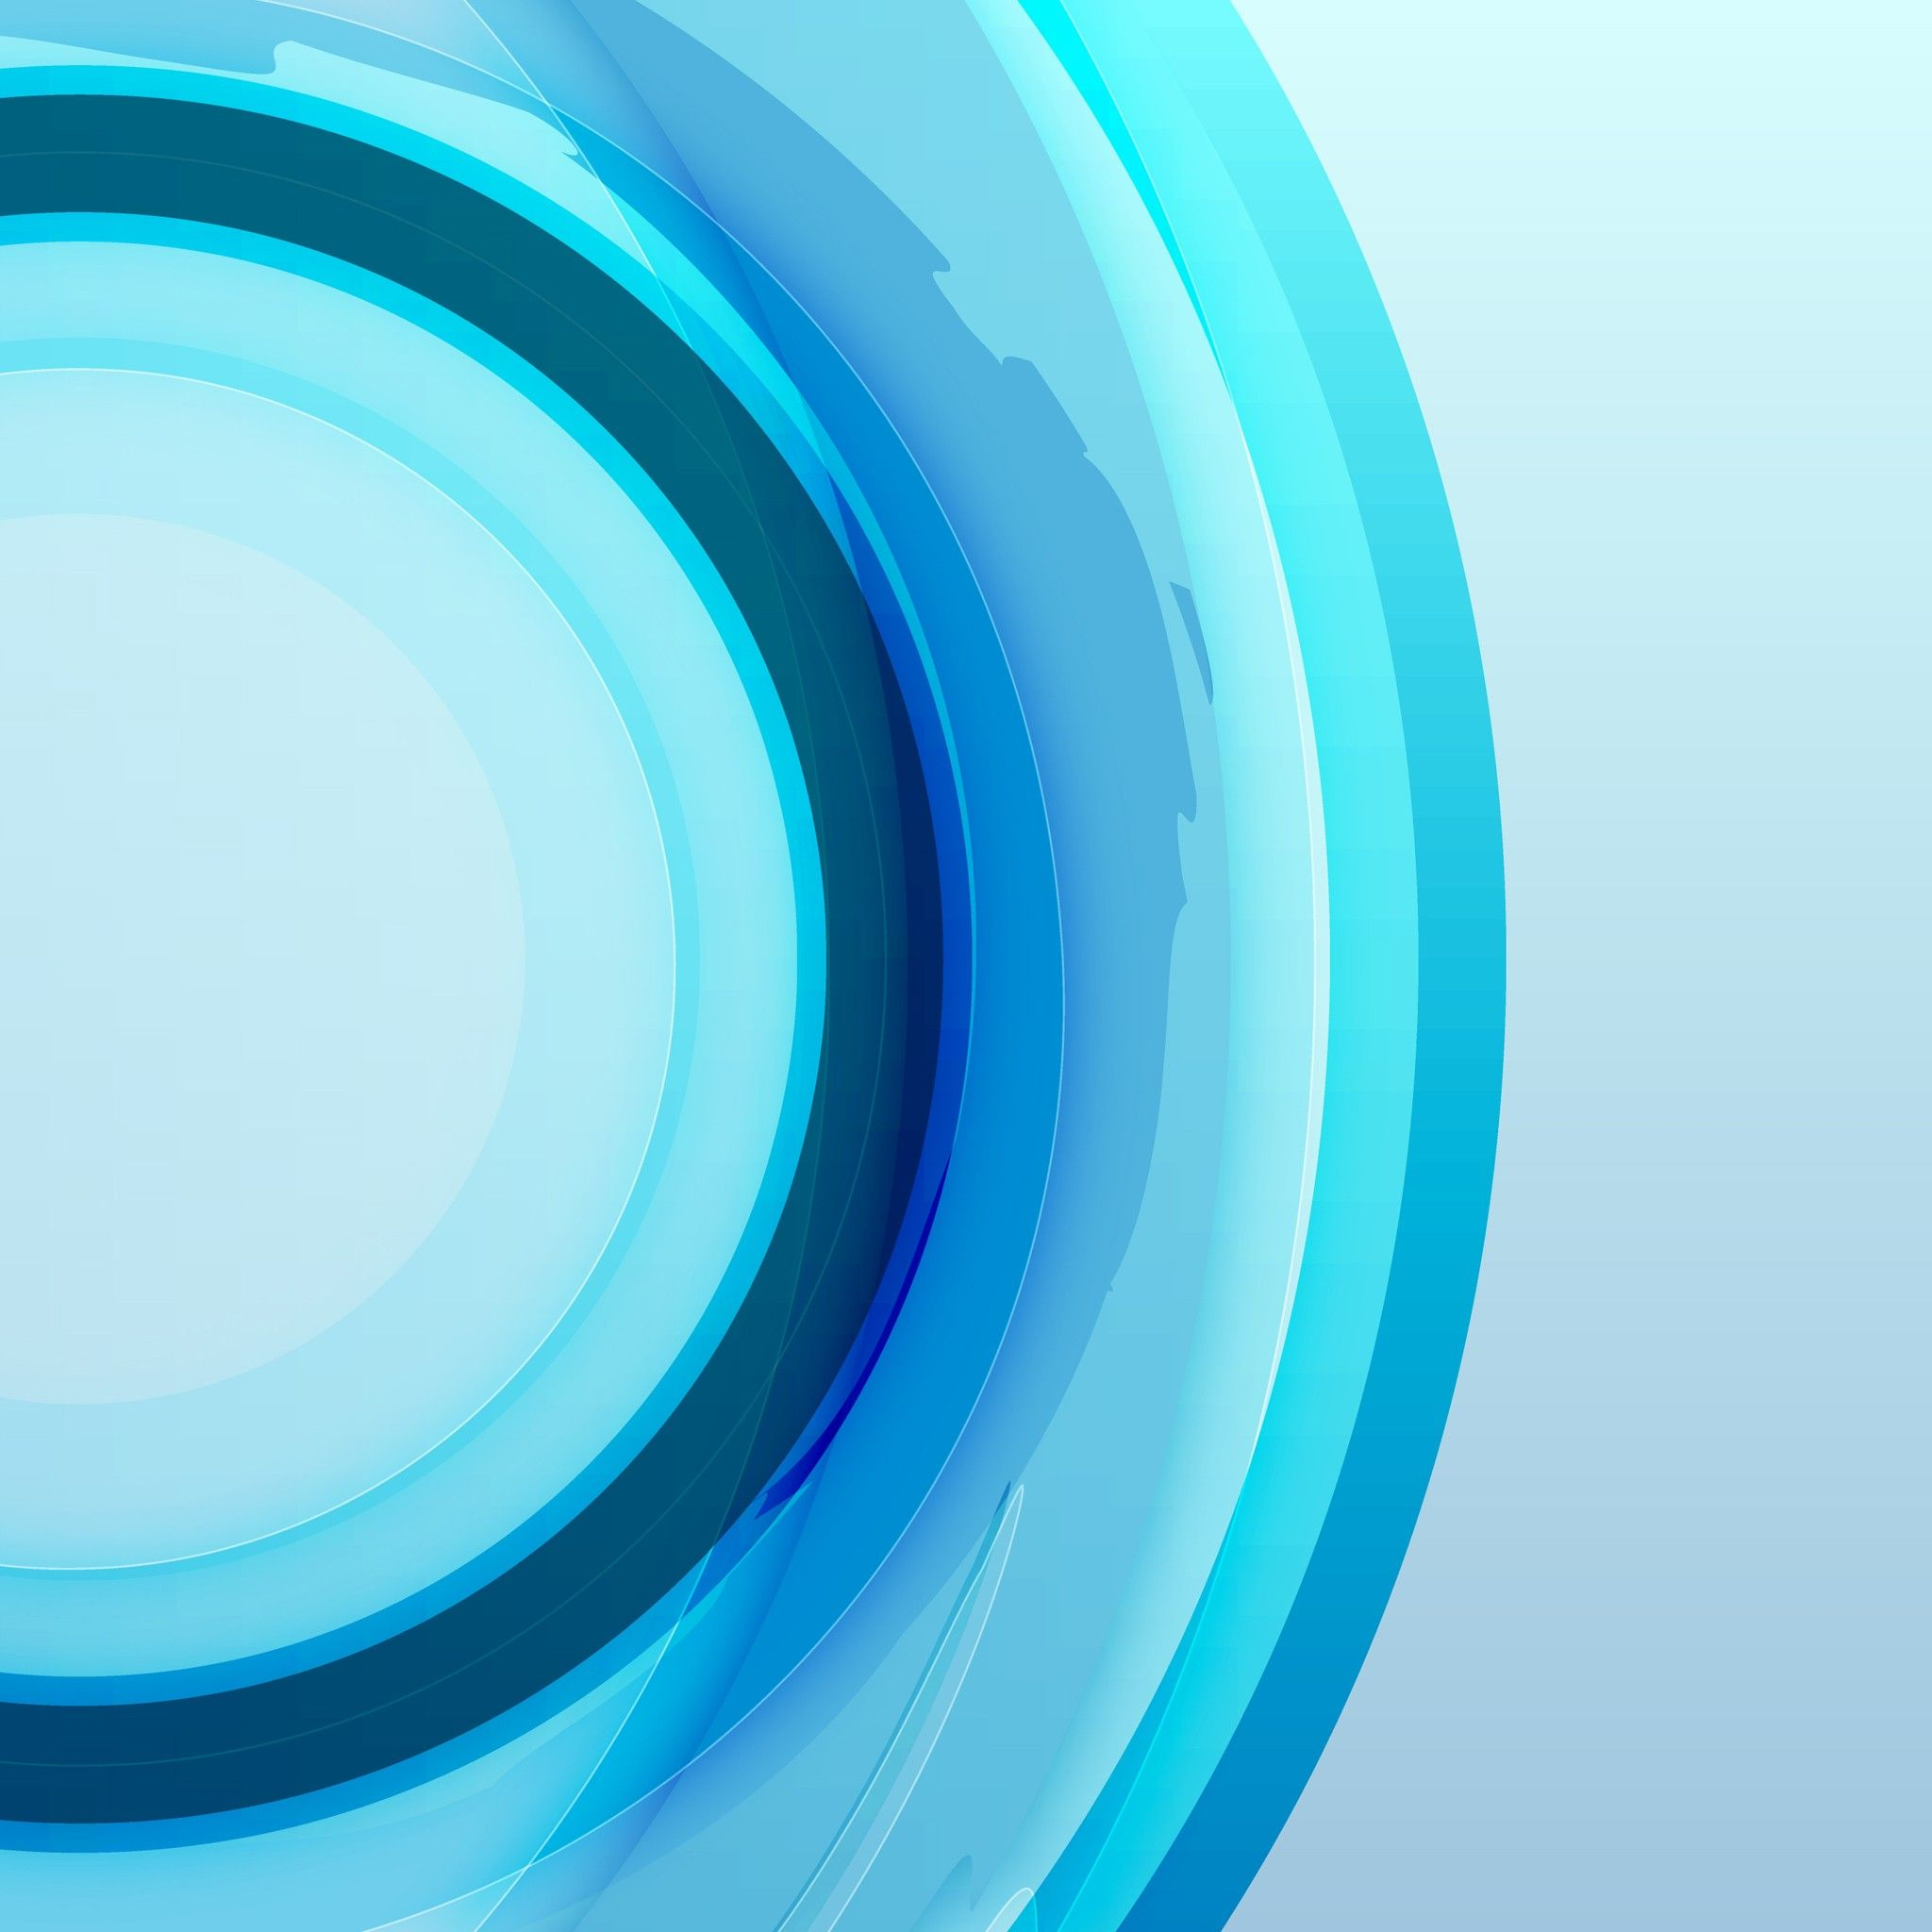 Abstract Blue Wallpaper - Cliparts.co